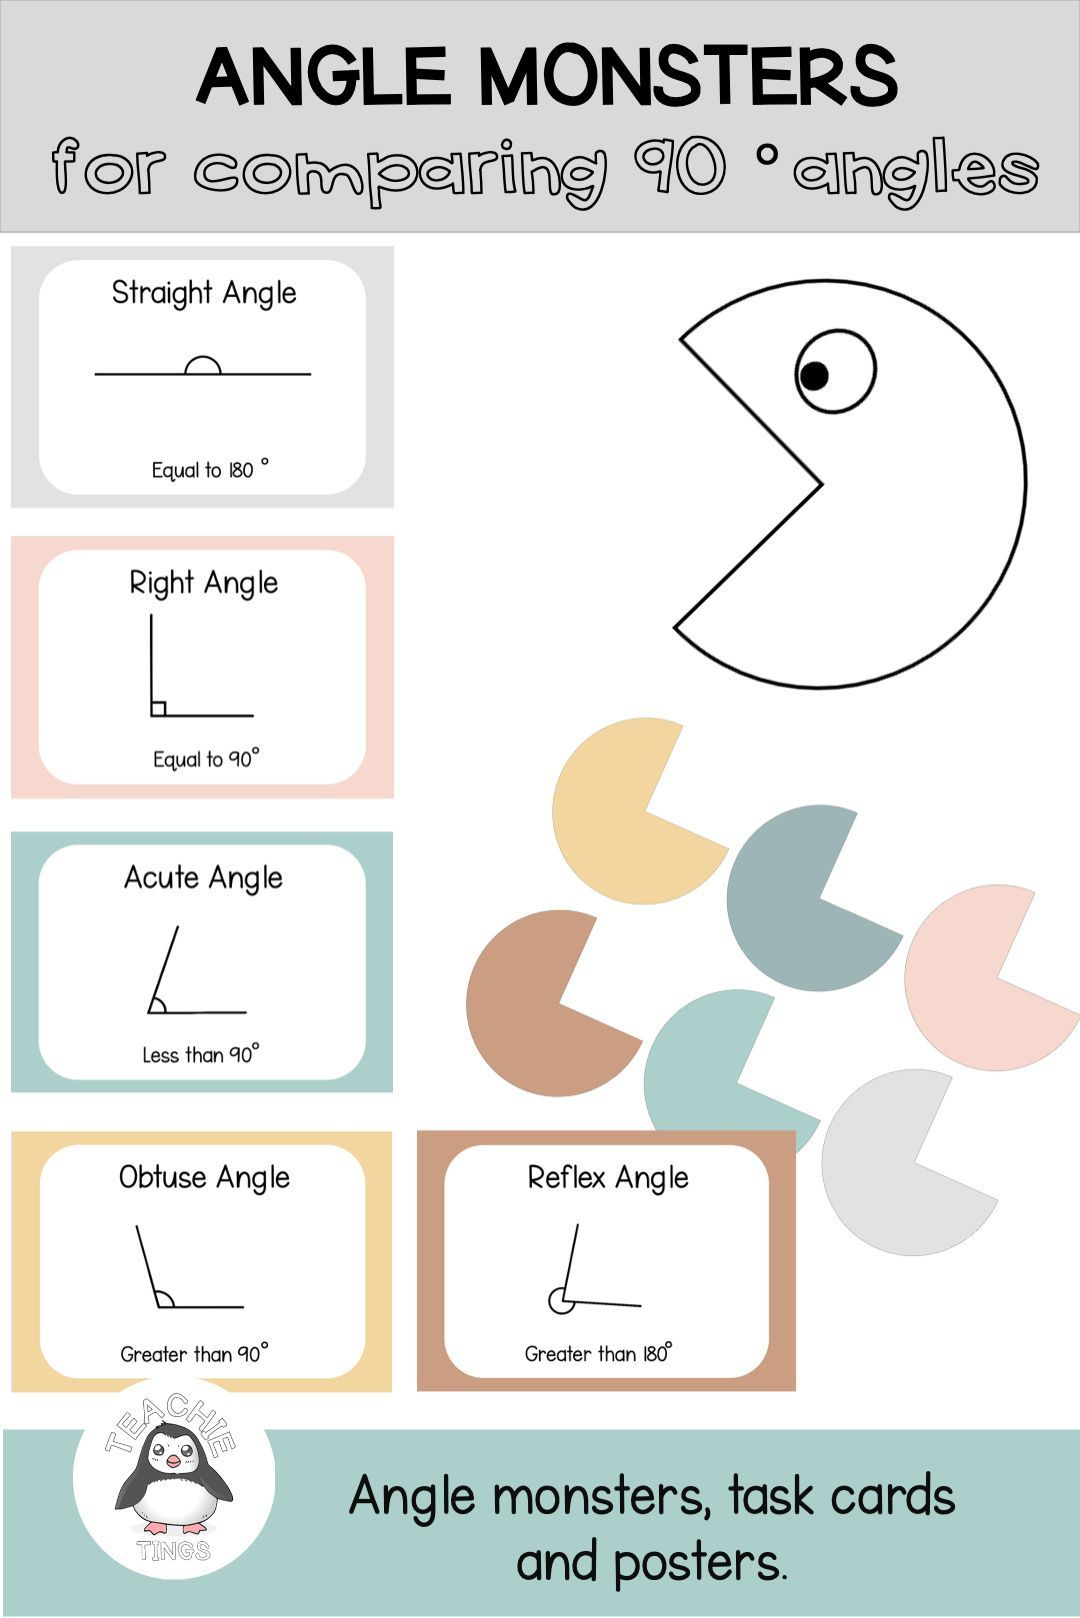 Angles Acute Right Obtuse Straight And Reflex Task Cards And Posters Task Cards Cards Identifying Angles [ 1618 x 1080 Pixel ]